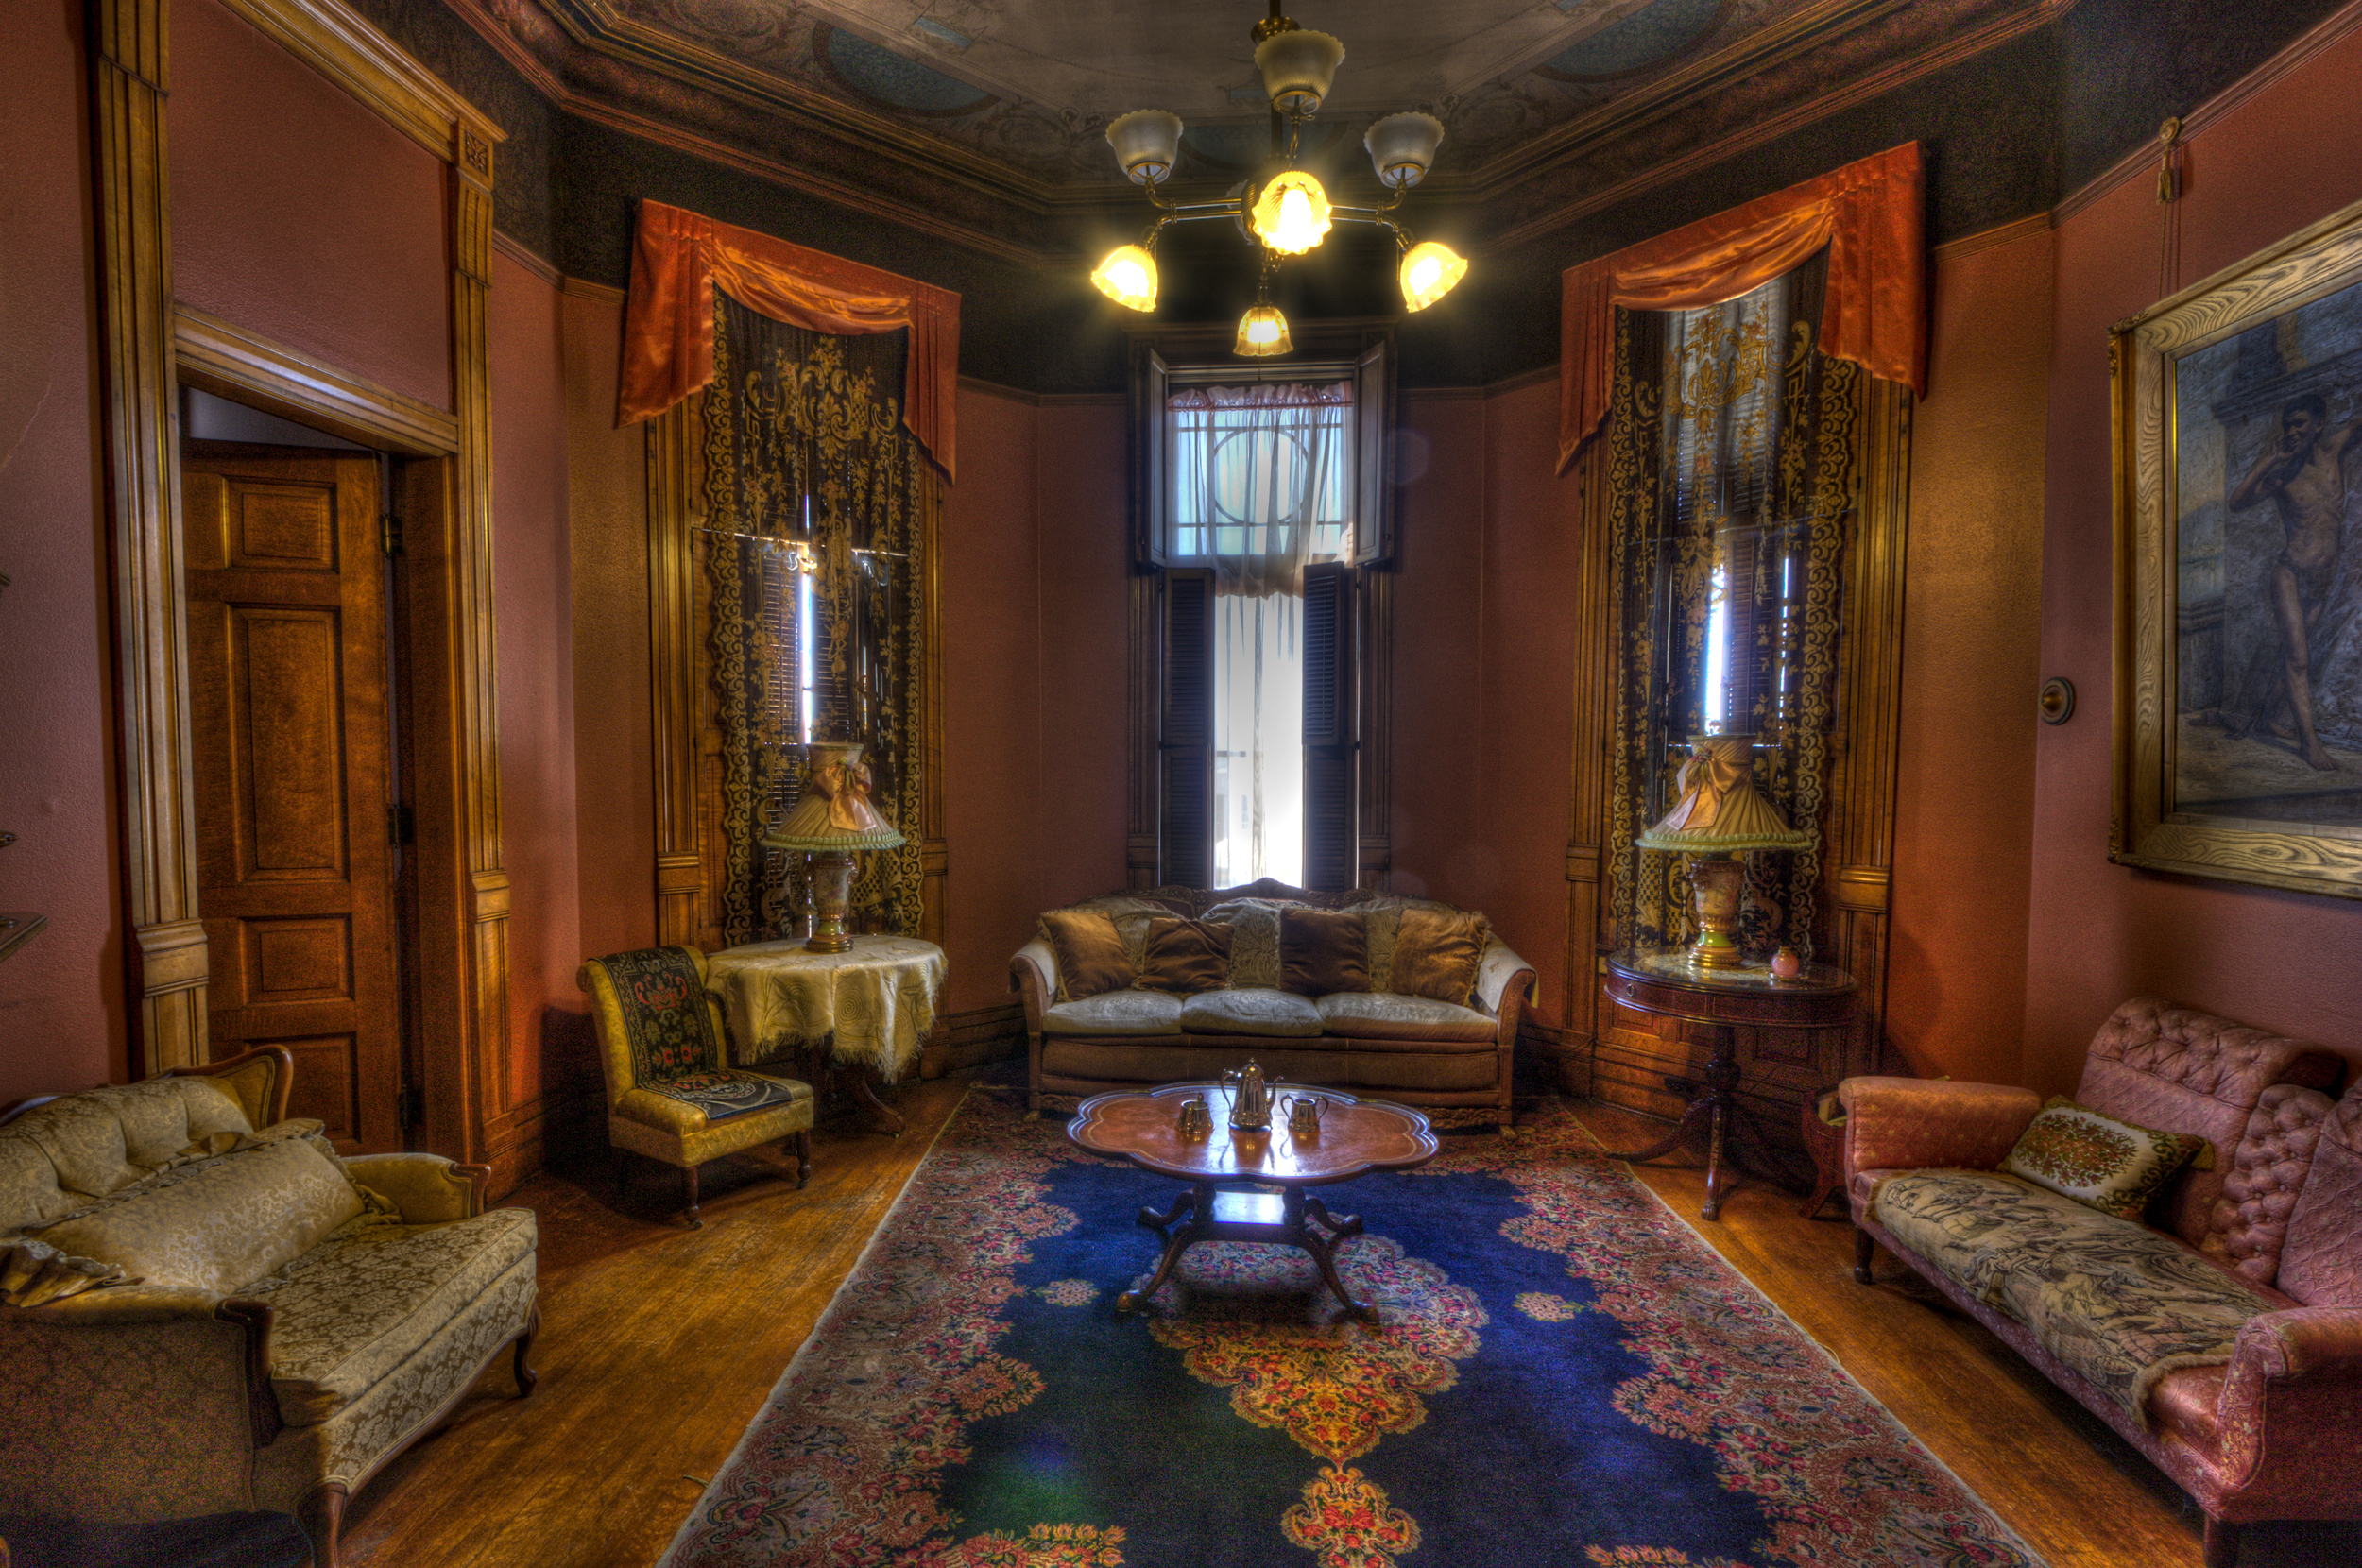 Sitting room, master bedroom suite, Copper King Mansion, the W.A. Clark home in Butte, Montana. c. Daniel Hagerman. Prints for sale at http://fineartamerica.com/art/all/copper+king+mansion/all.